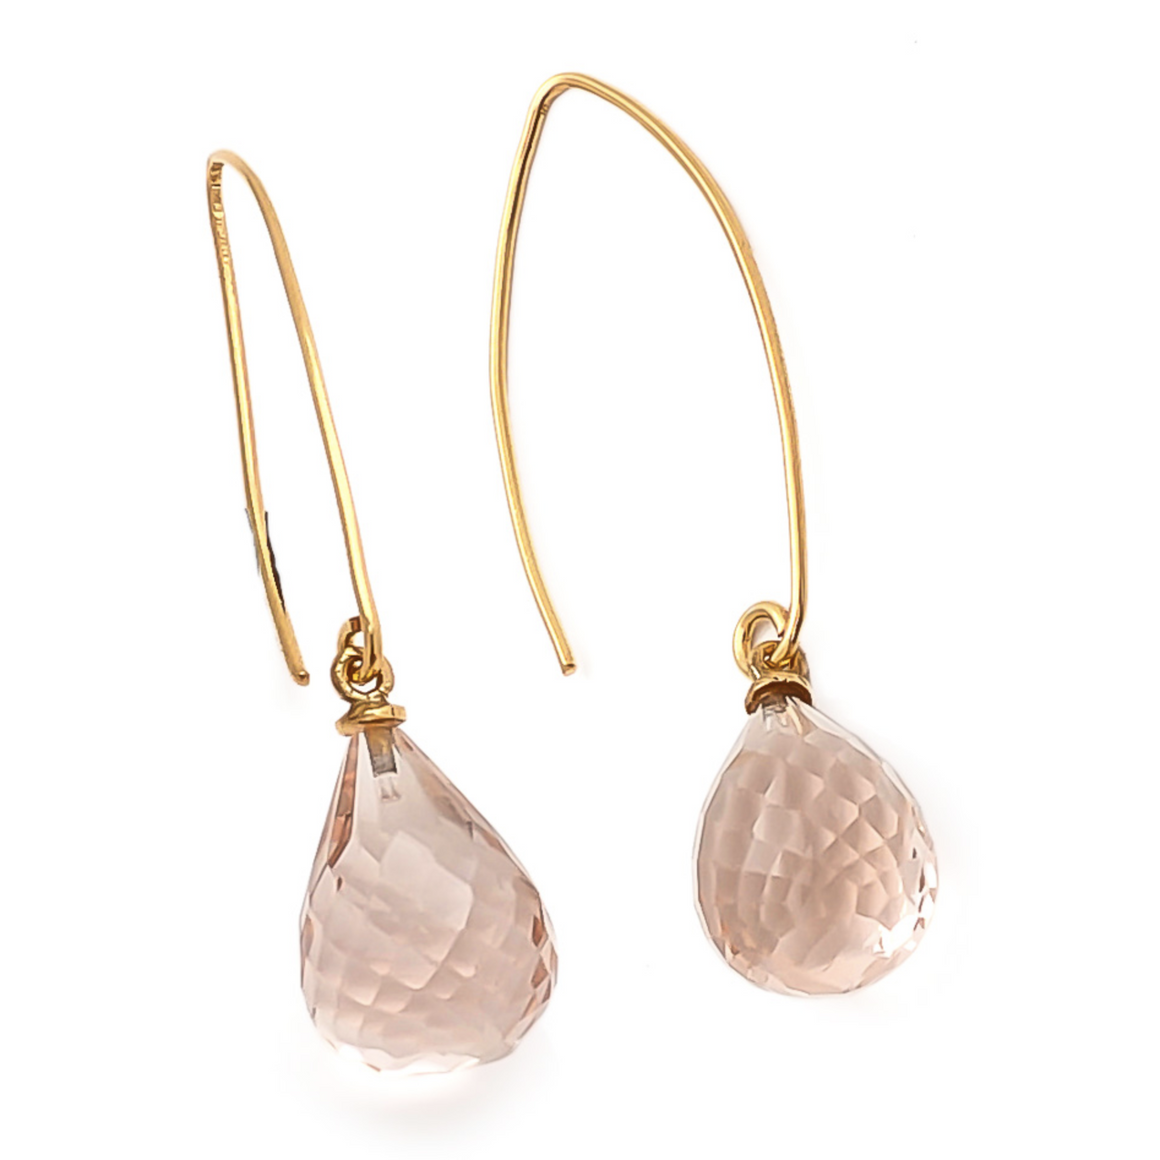 SHYLA ARABELLA EARRINGS - PINK QUARTZ